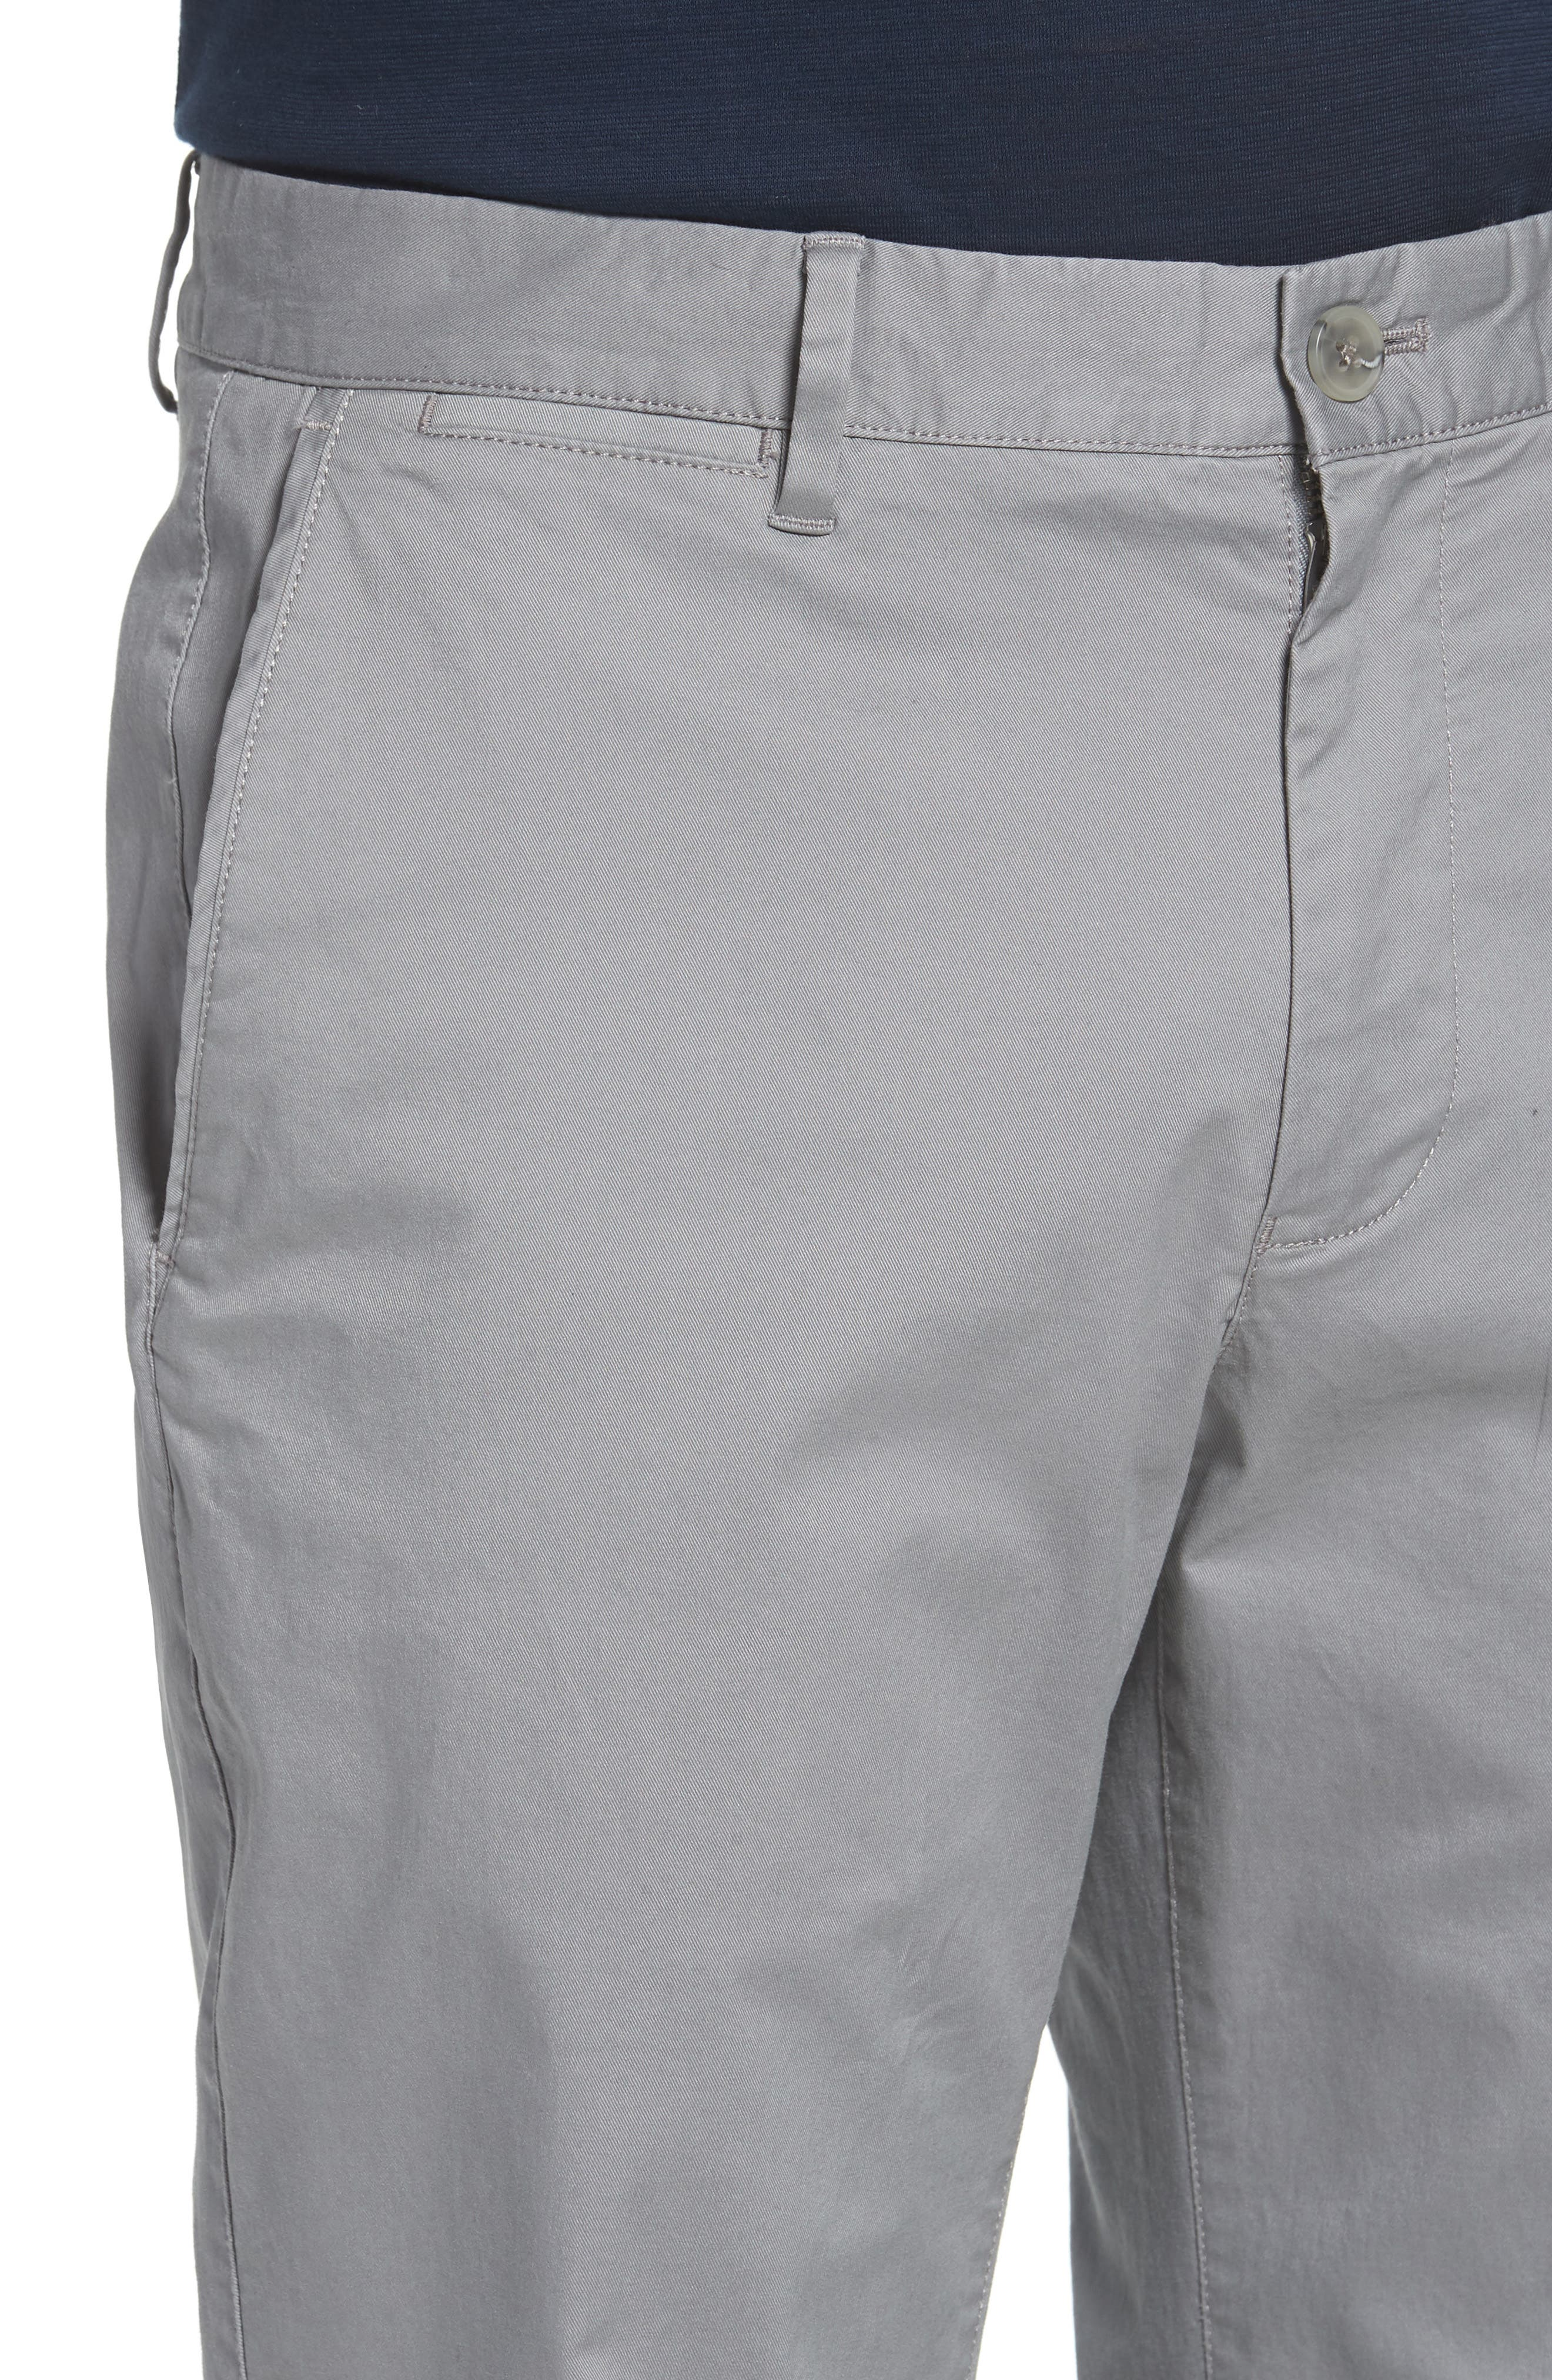 Summer Weight Slim Fit Stretch Chinos,                             Alternate thumbnail 4, color,                             020